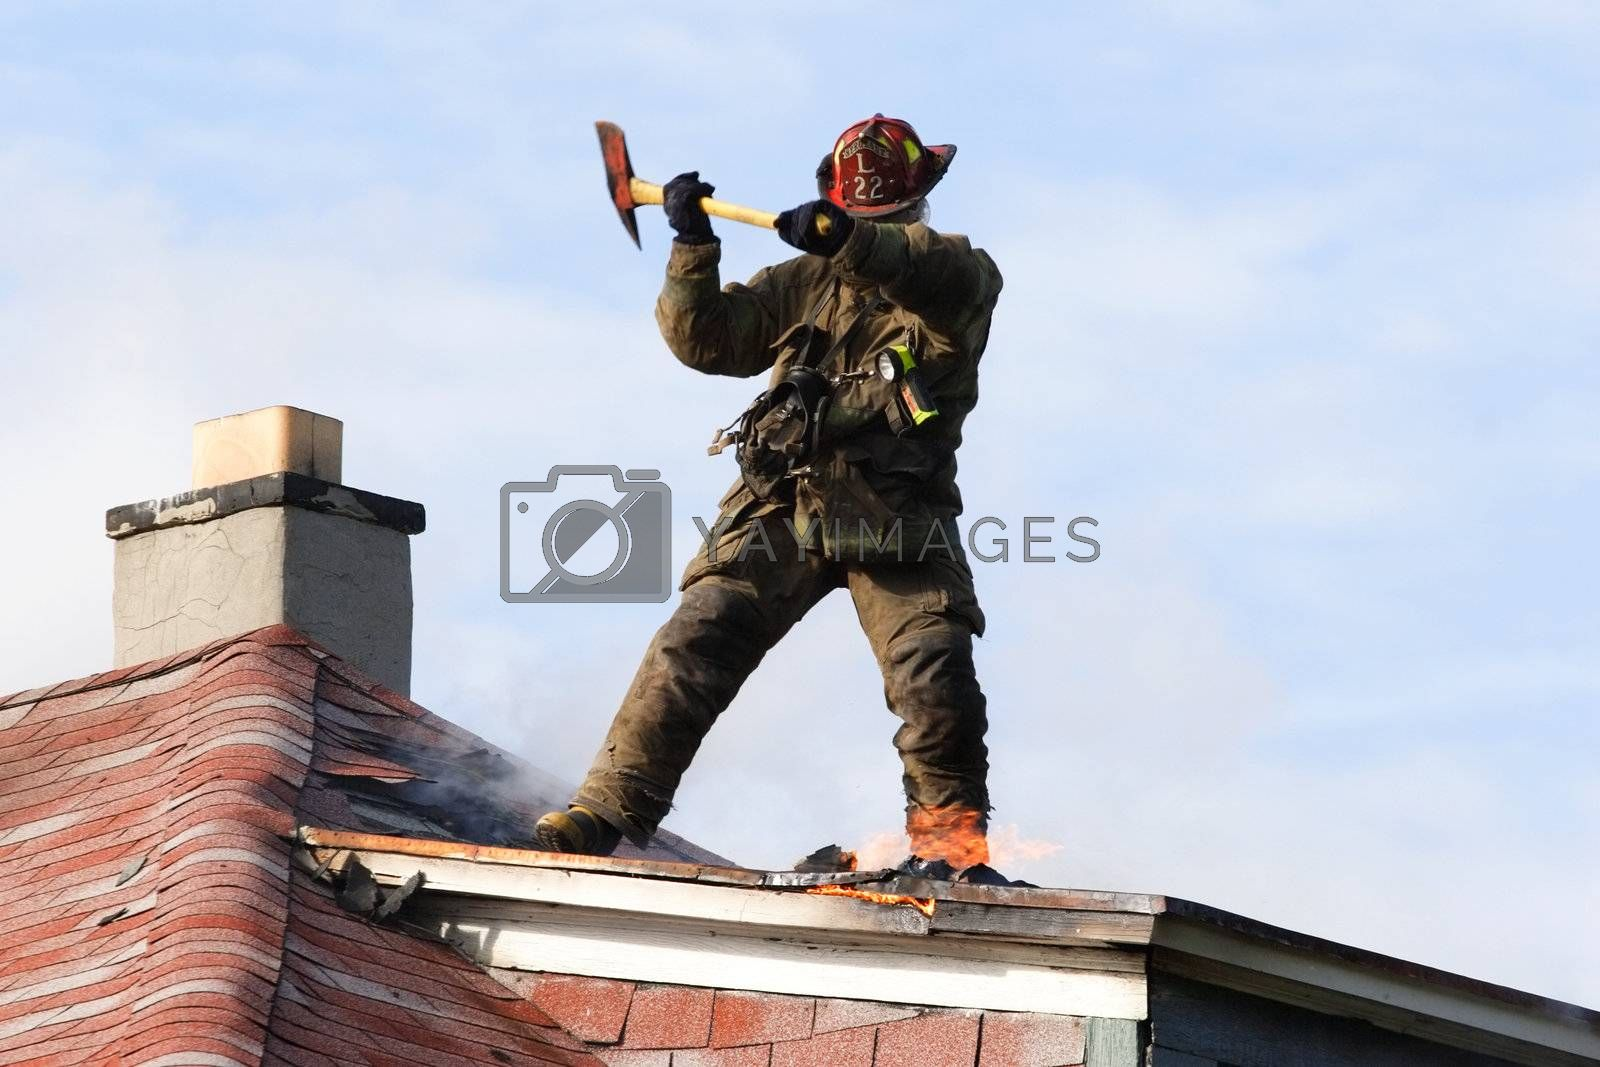 Firefighter standing on the roof of a house chopping at fire with an ax